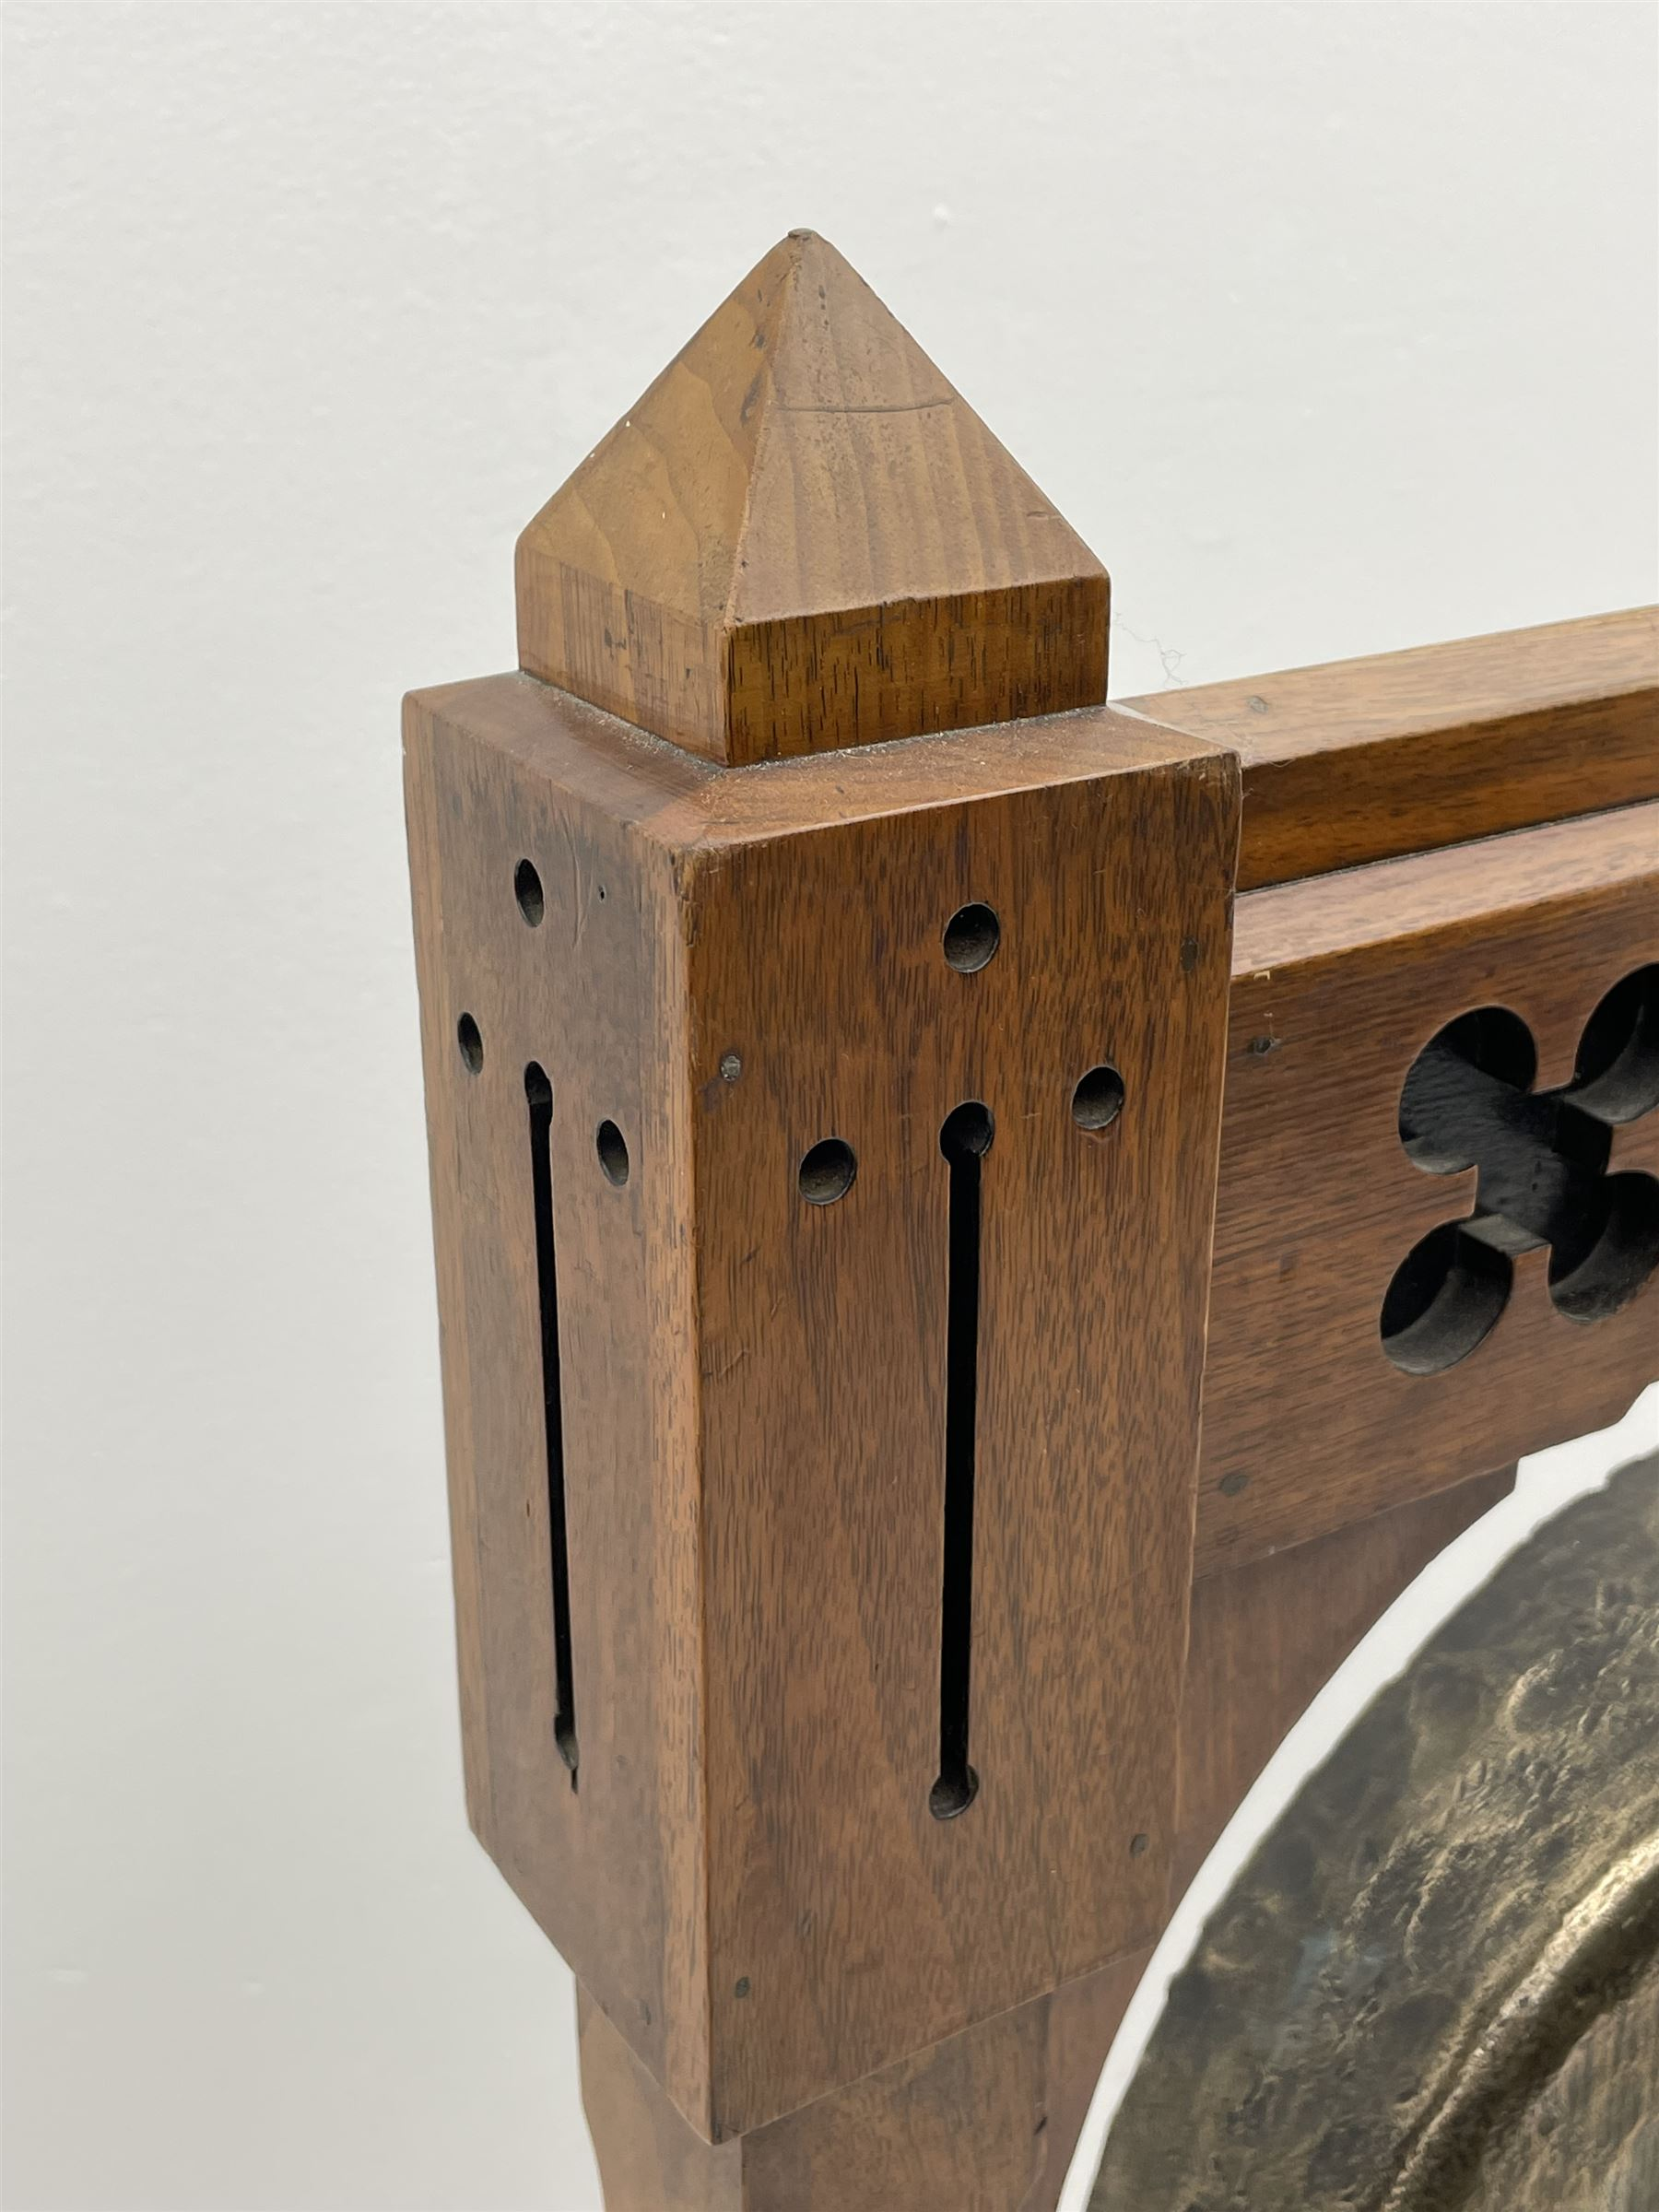 Late Victorian Aesthetic Movement walnut and ebonised dinner gong - Image 4 of 5